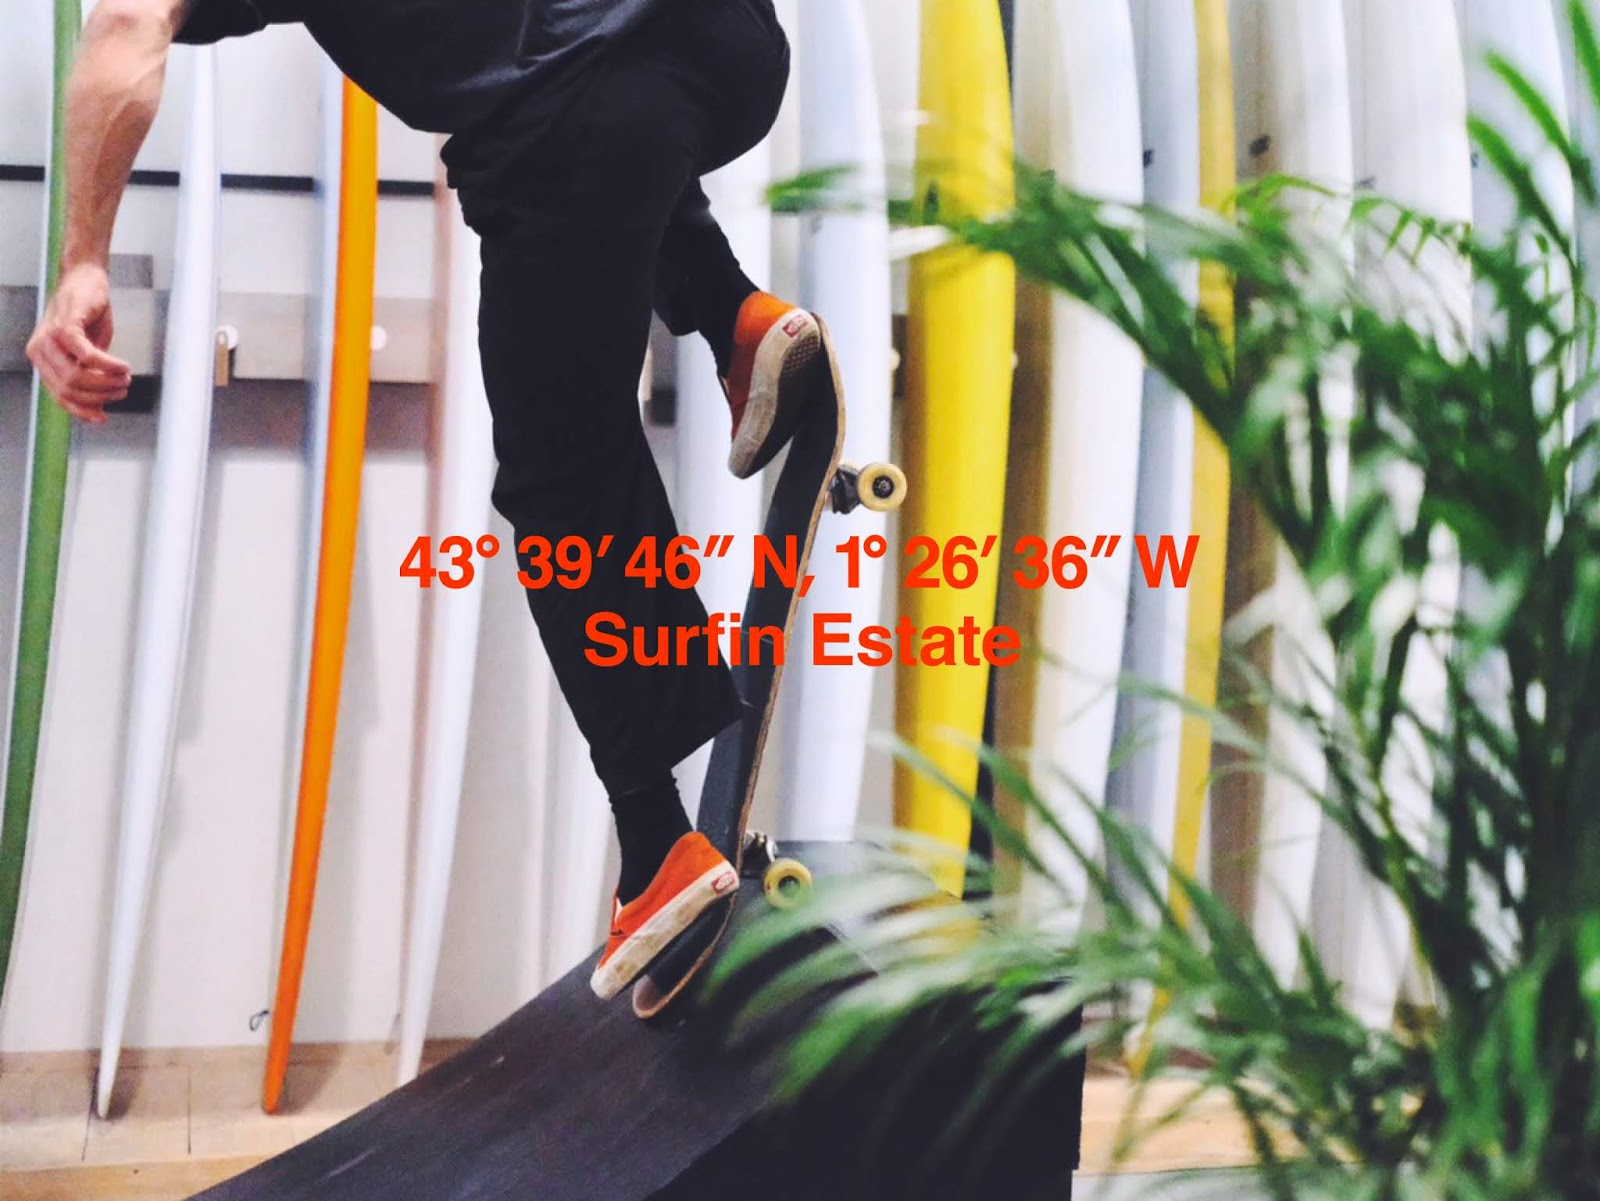 Surfinestate brand apparel clothing surf surfboard shape handshape behind skateboarding skateboard Alberto scattolin Vincent Lemanceau Arthur Nelli exhibition gallery culture design photography